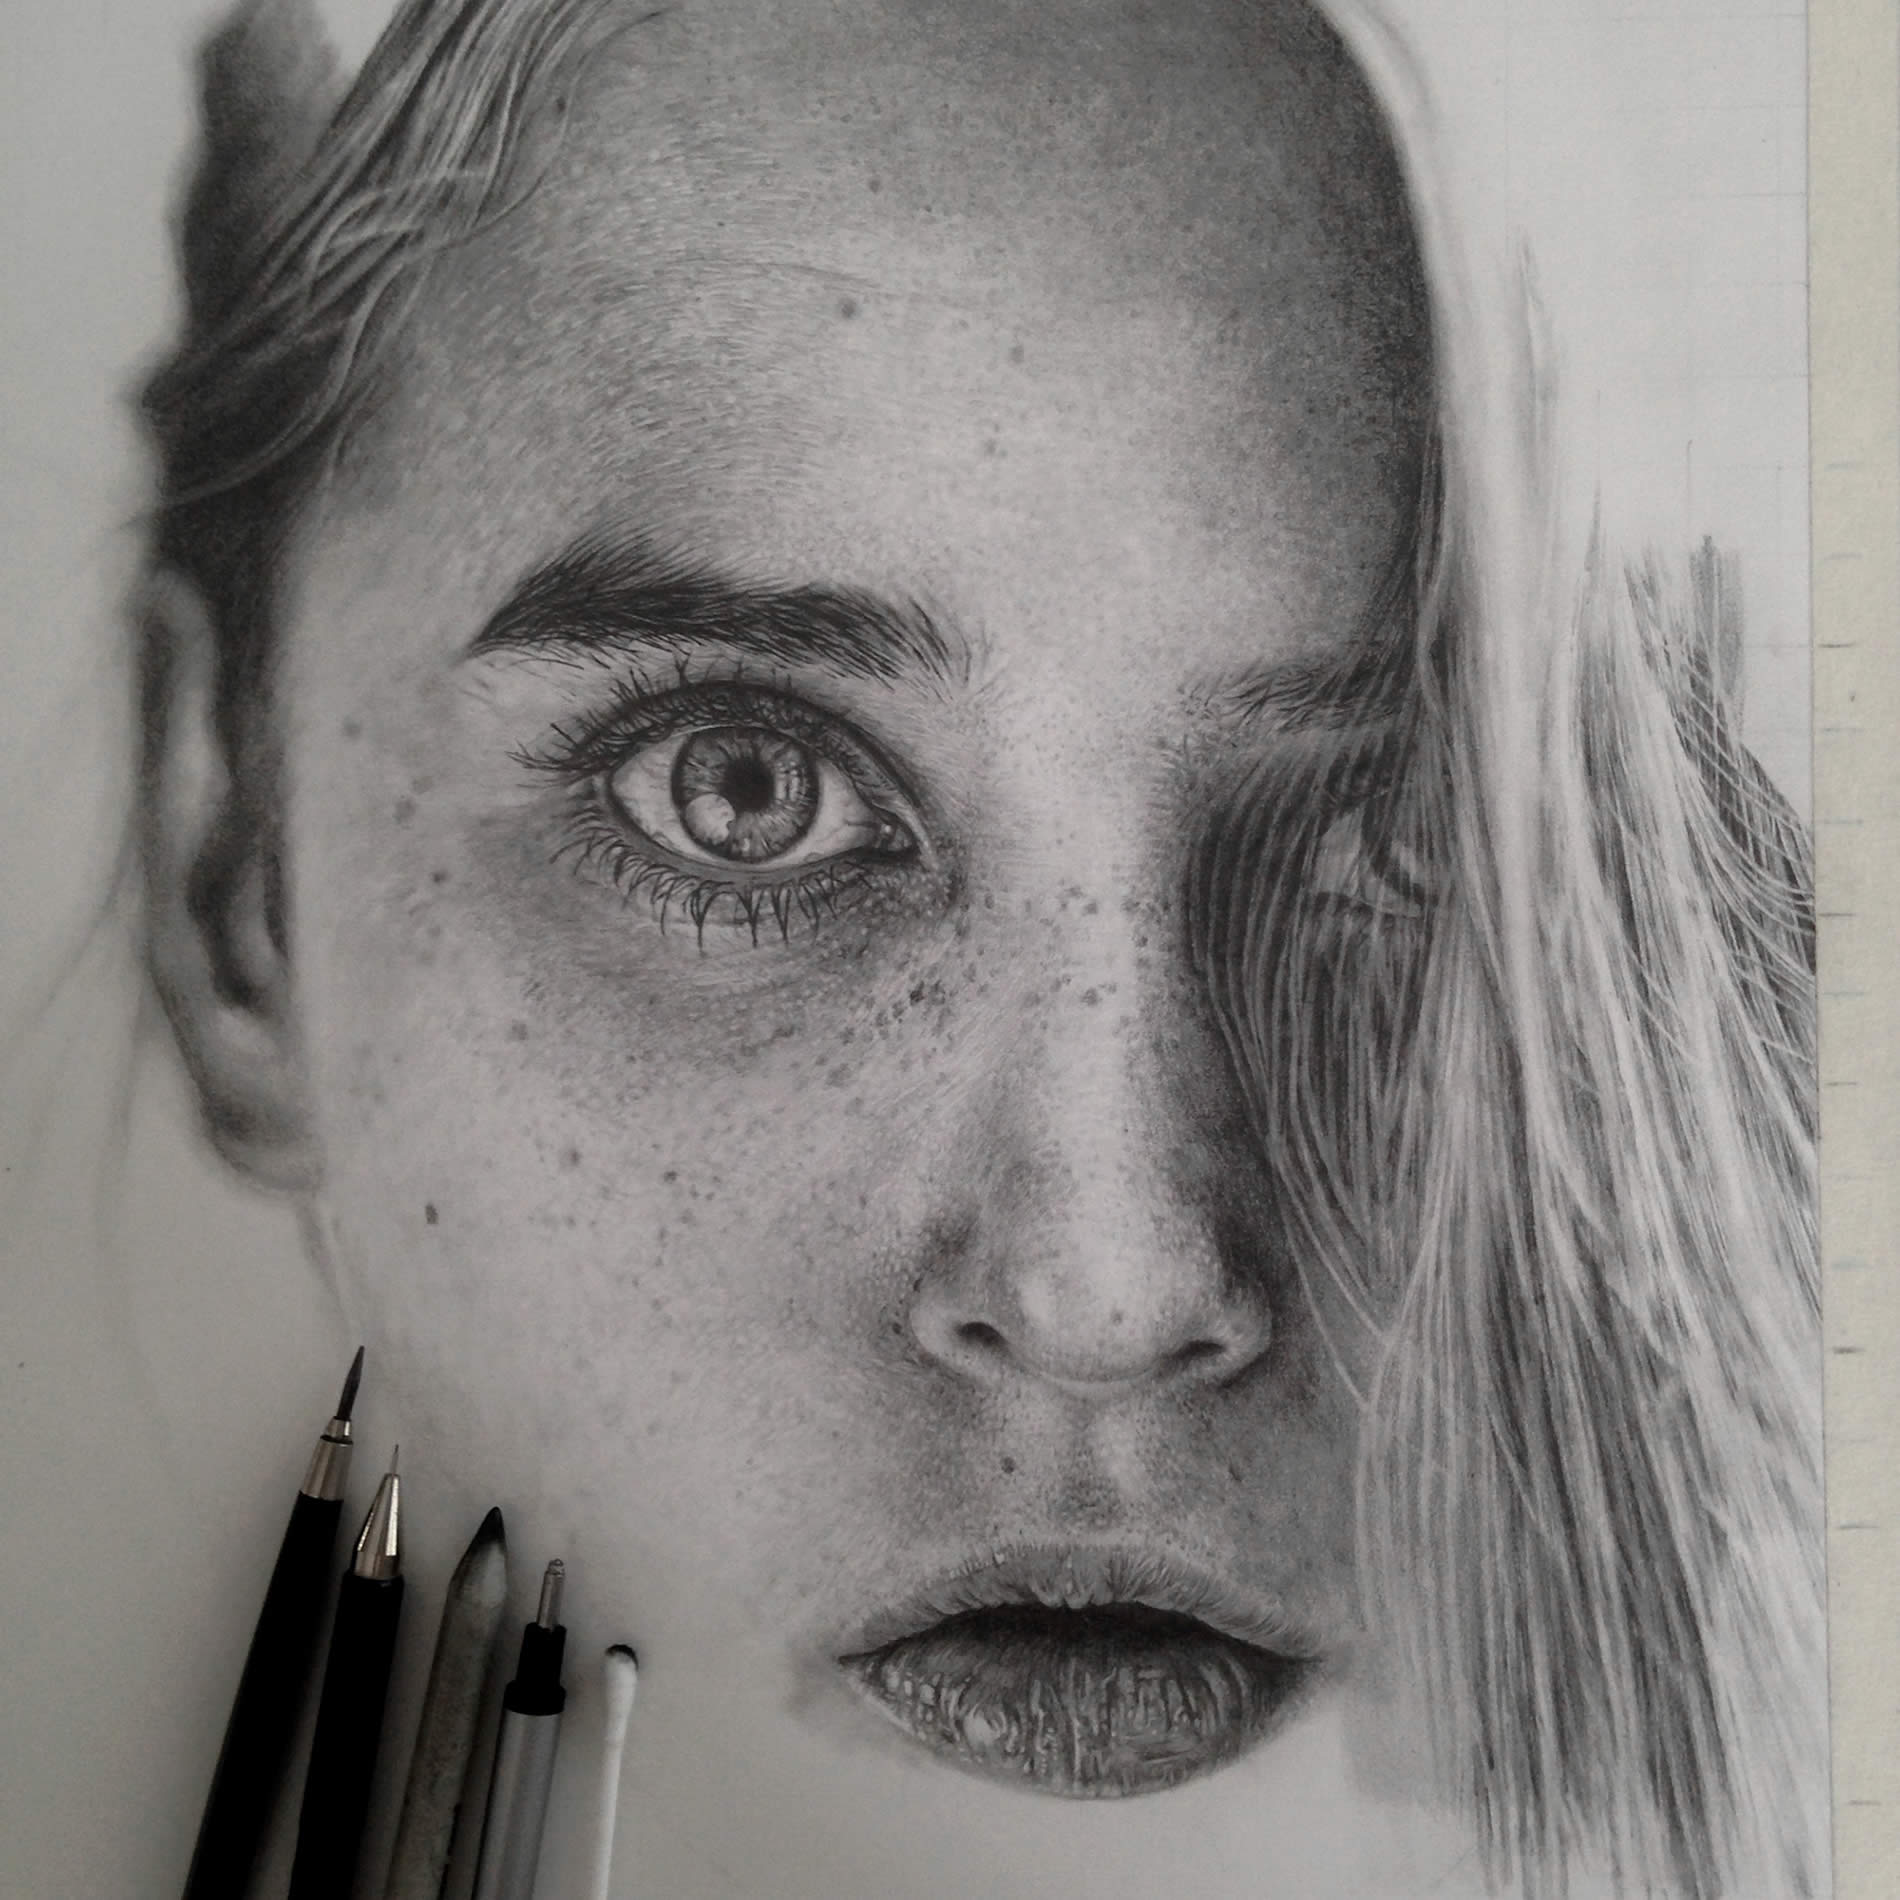 Monica Lee graphite pencil drawings 2745123